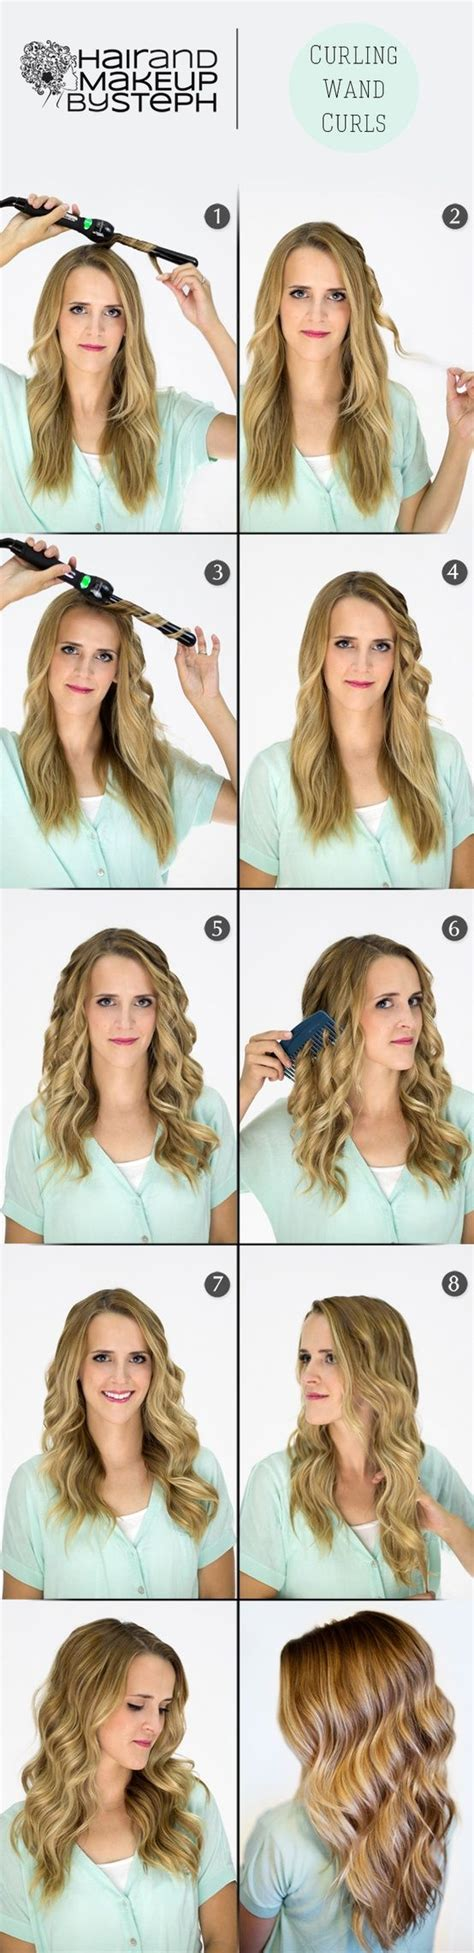 Hairstyles Using Curling Wand | curling wand waves hair pinterest curling wands